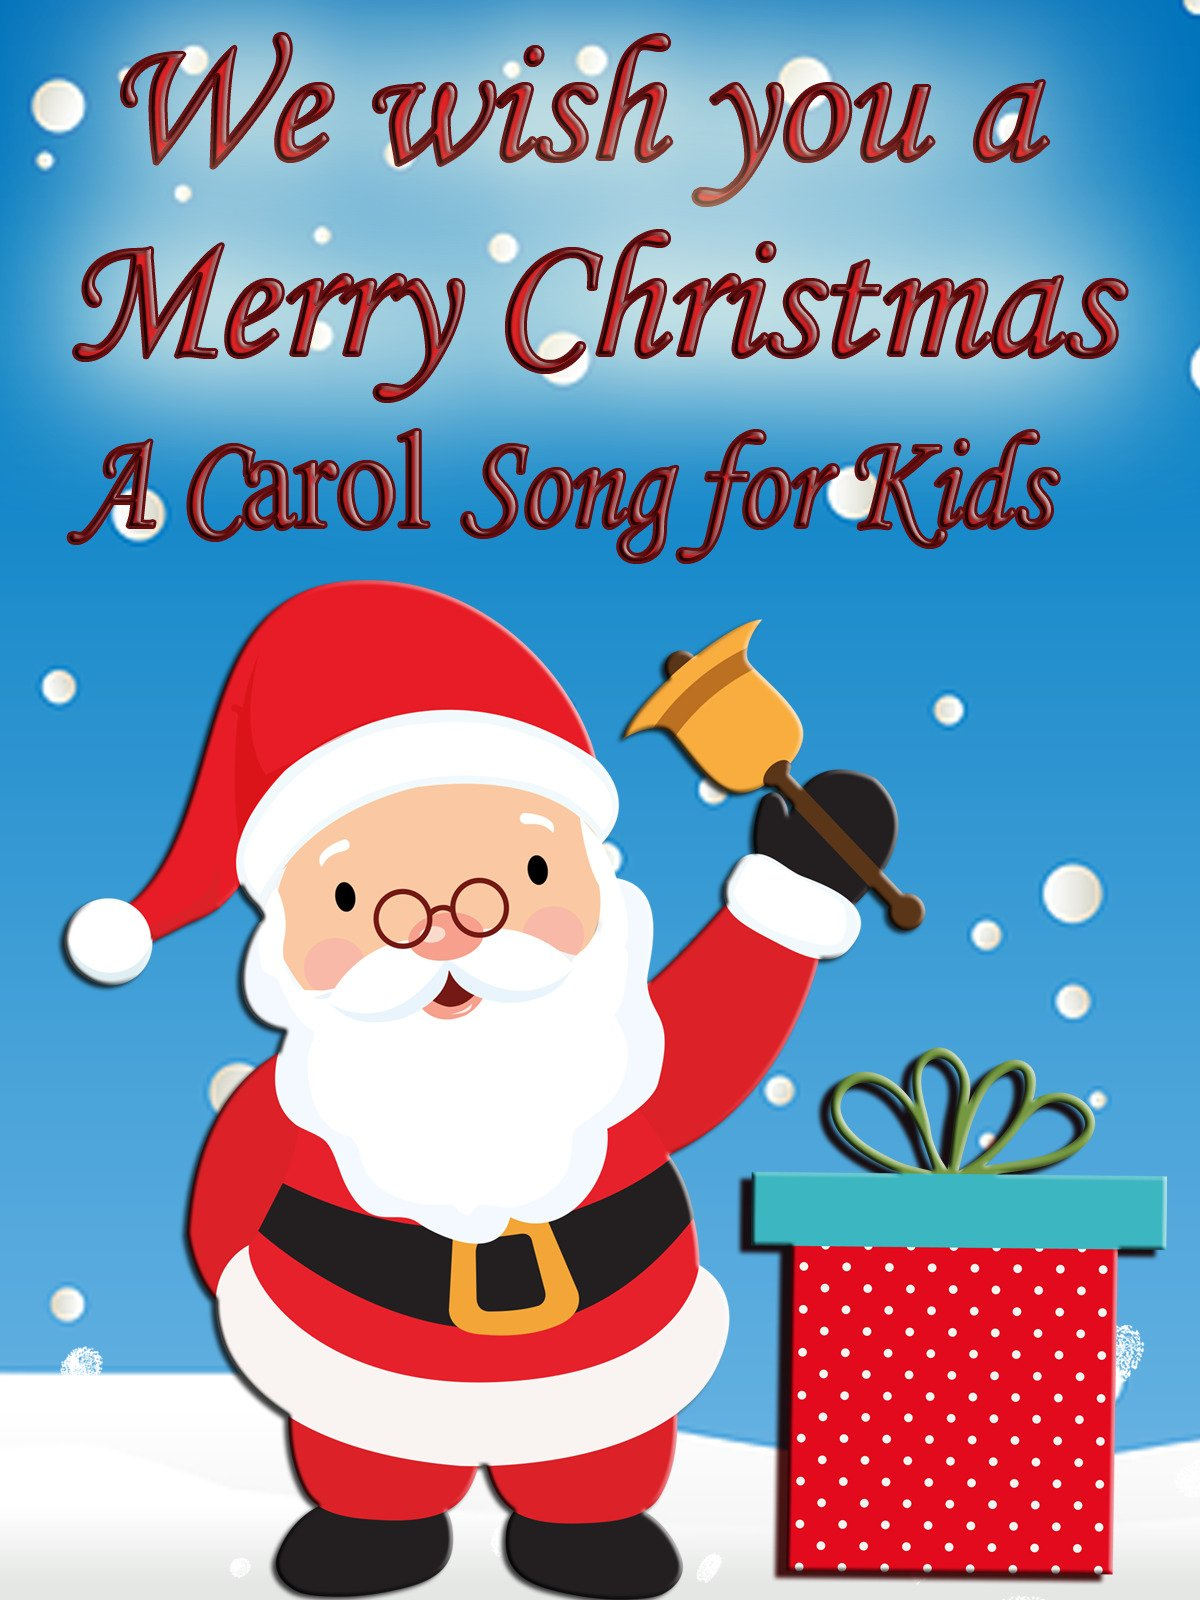 happy christmas eve song